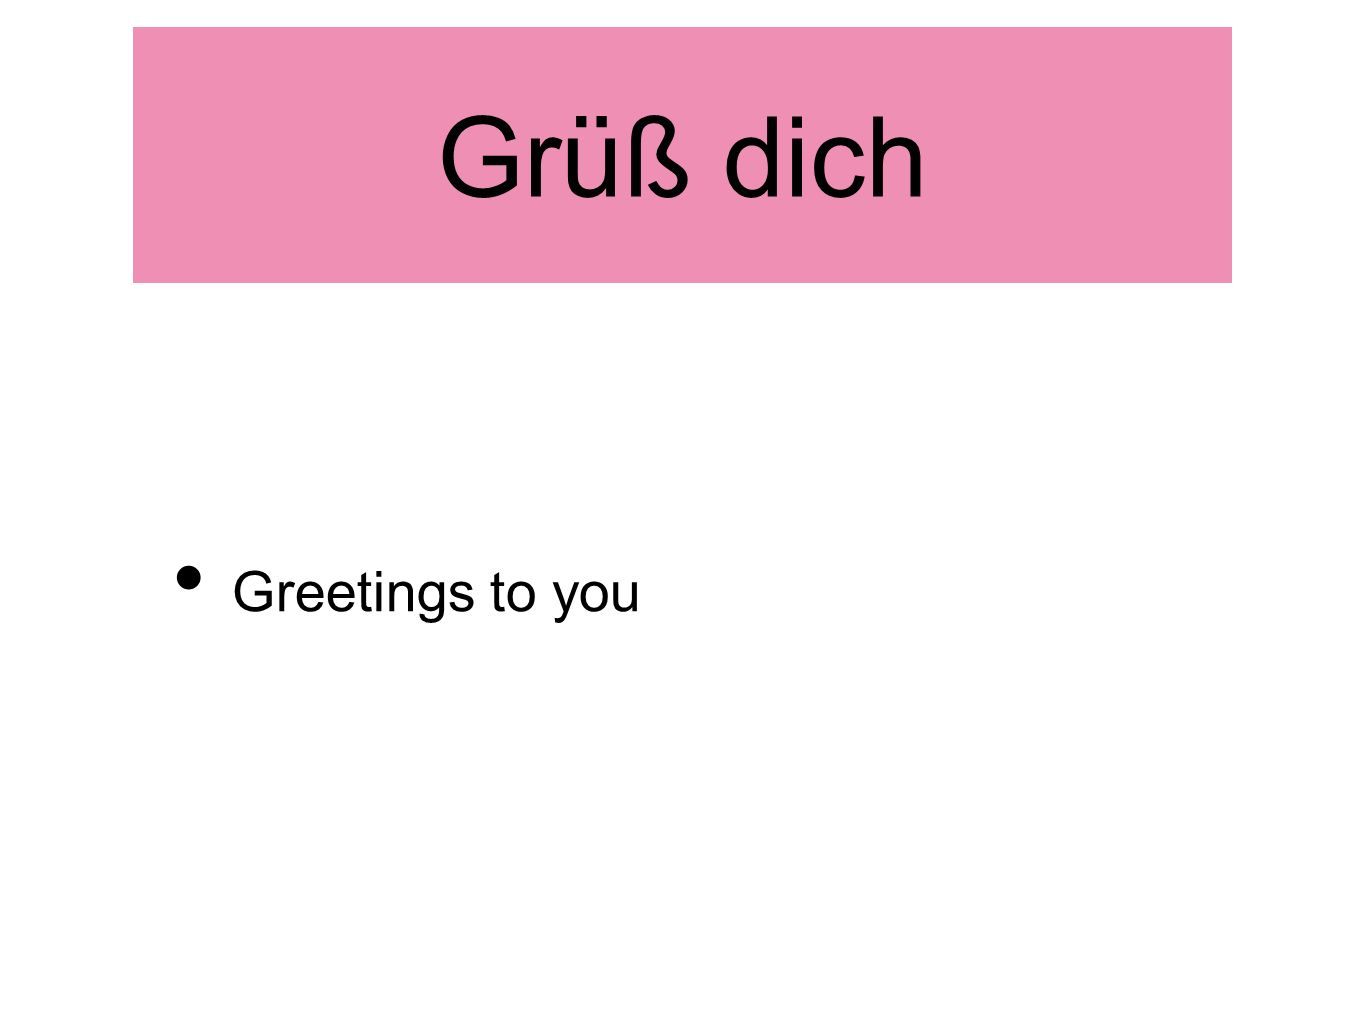 Grüß dich Greetings to you